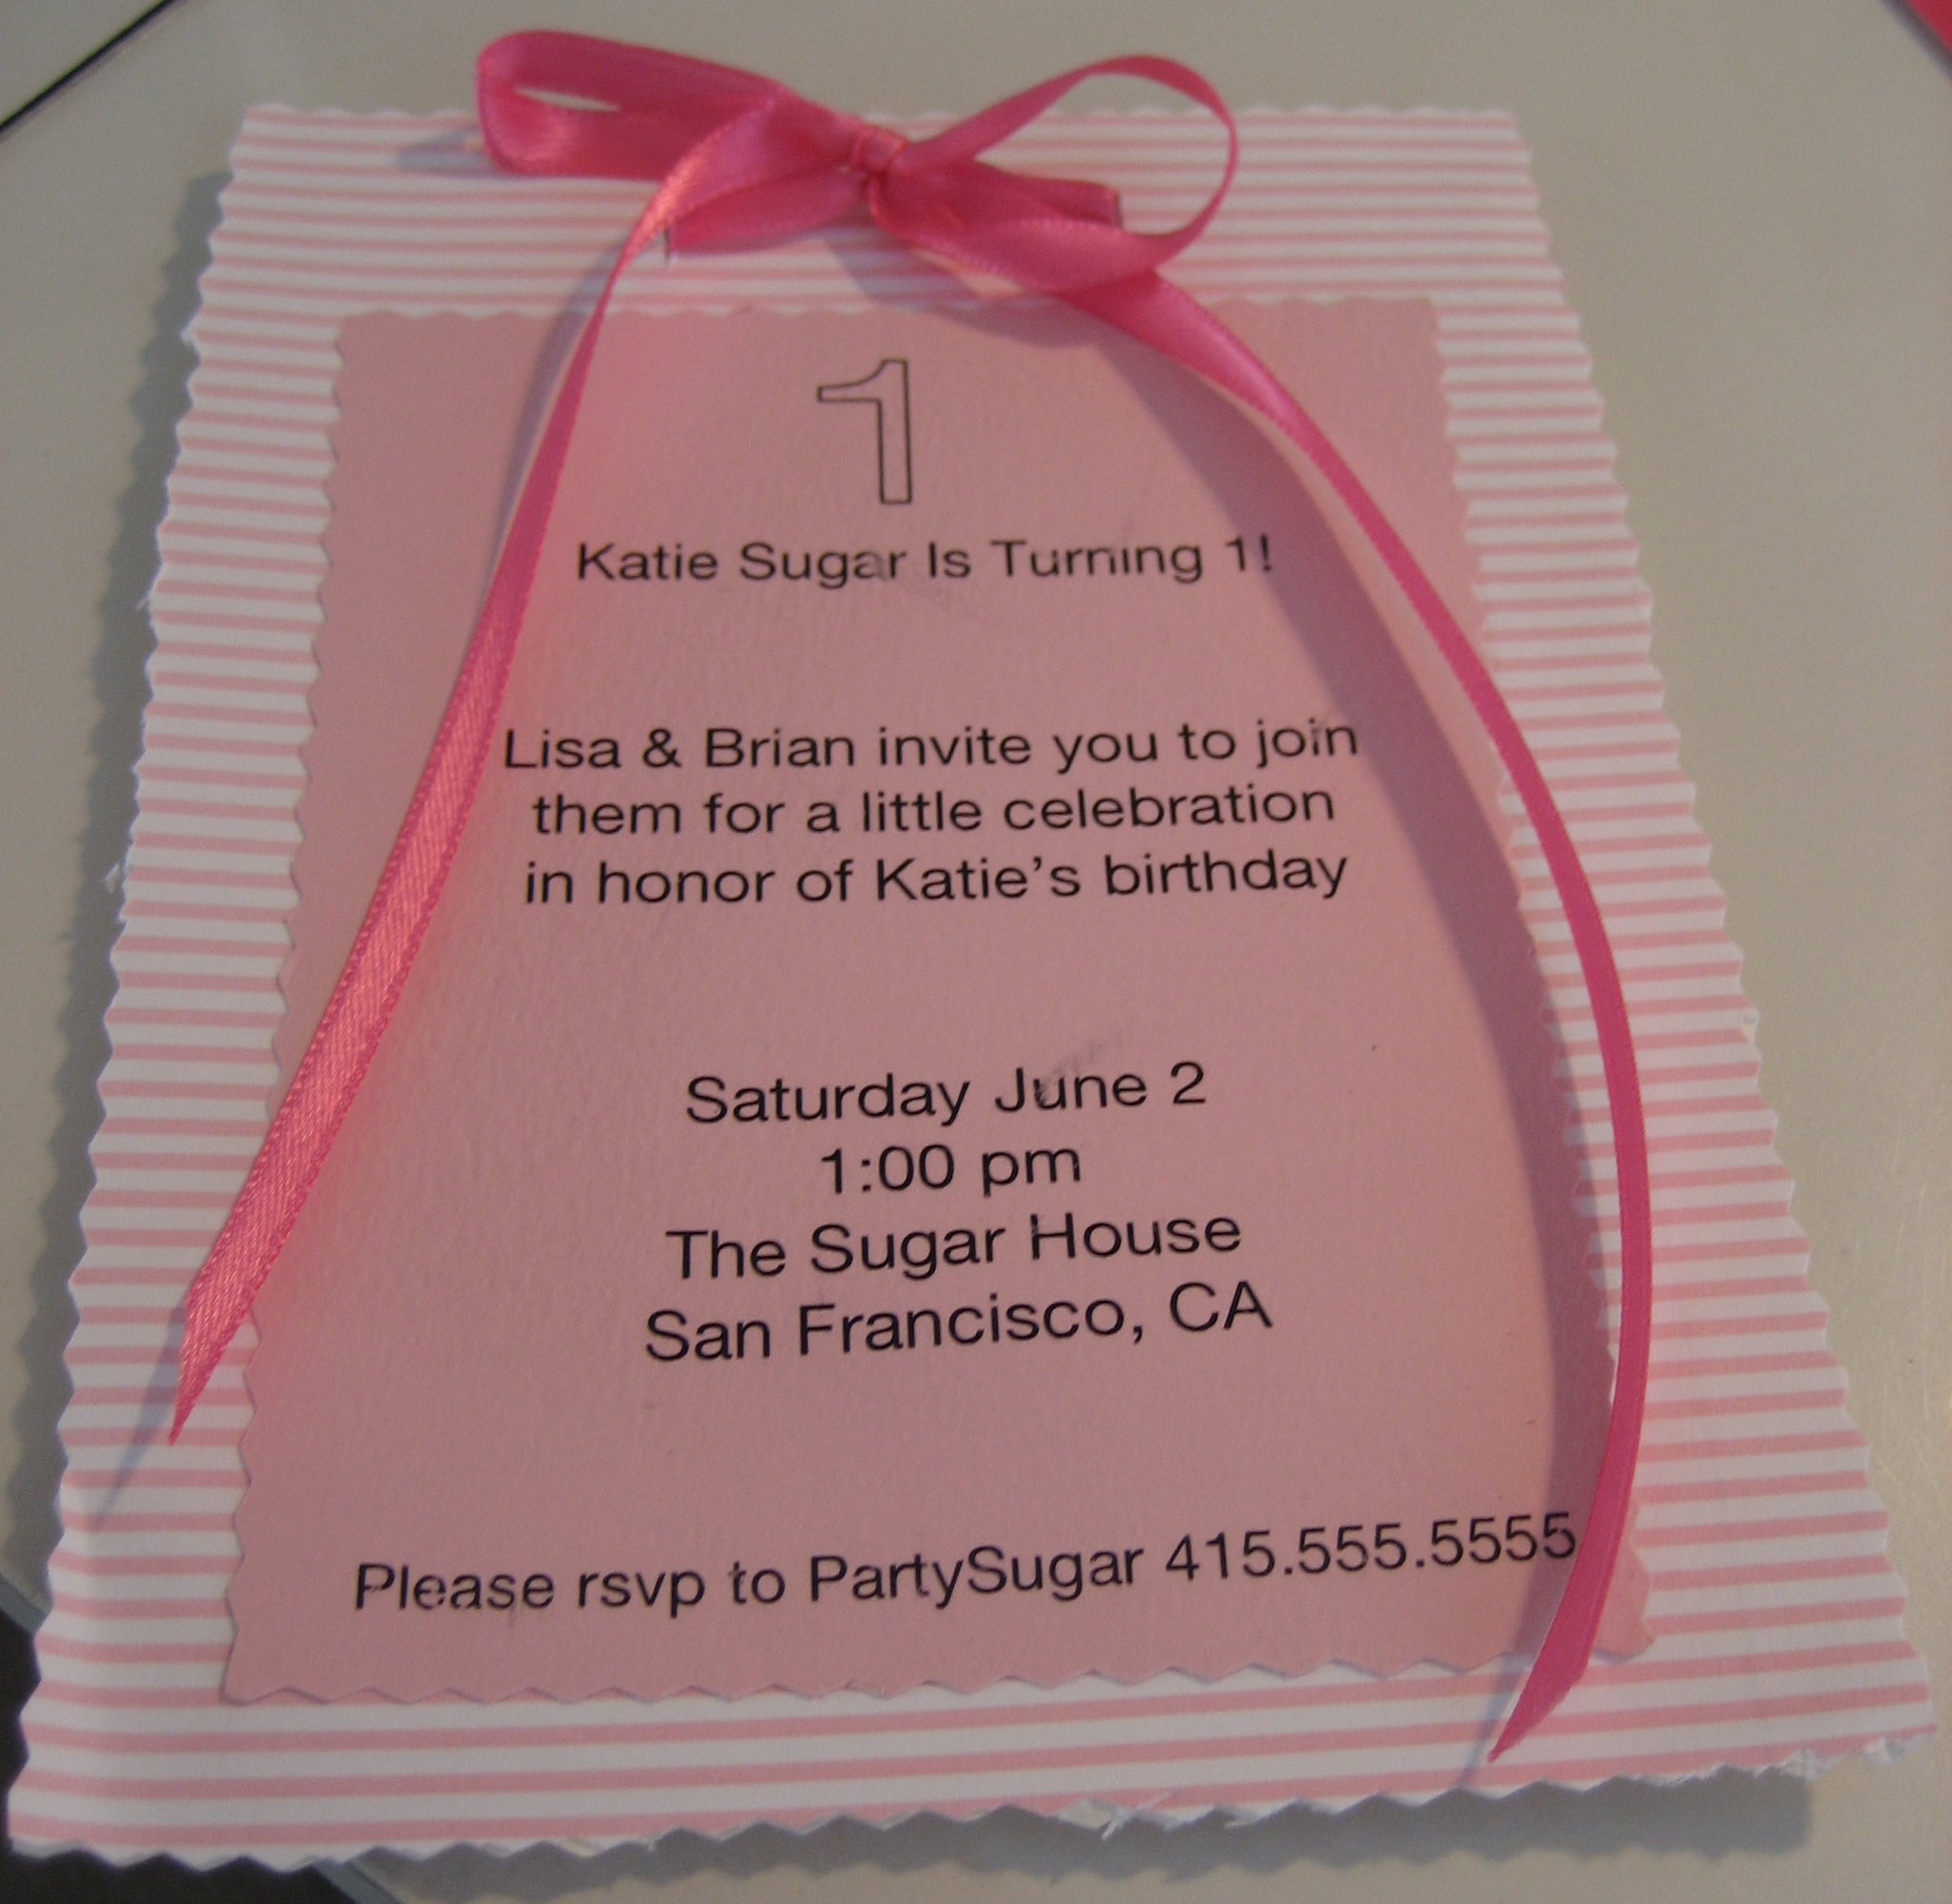 Come Party With Me: KatieSugar's First Birthday Party - Invite